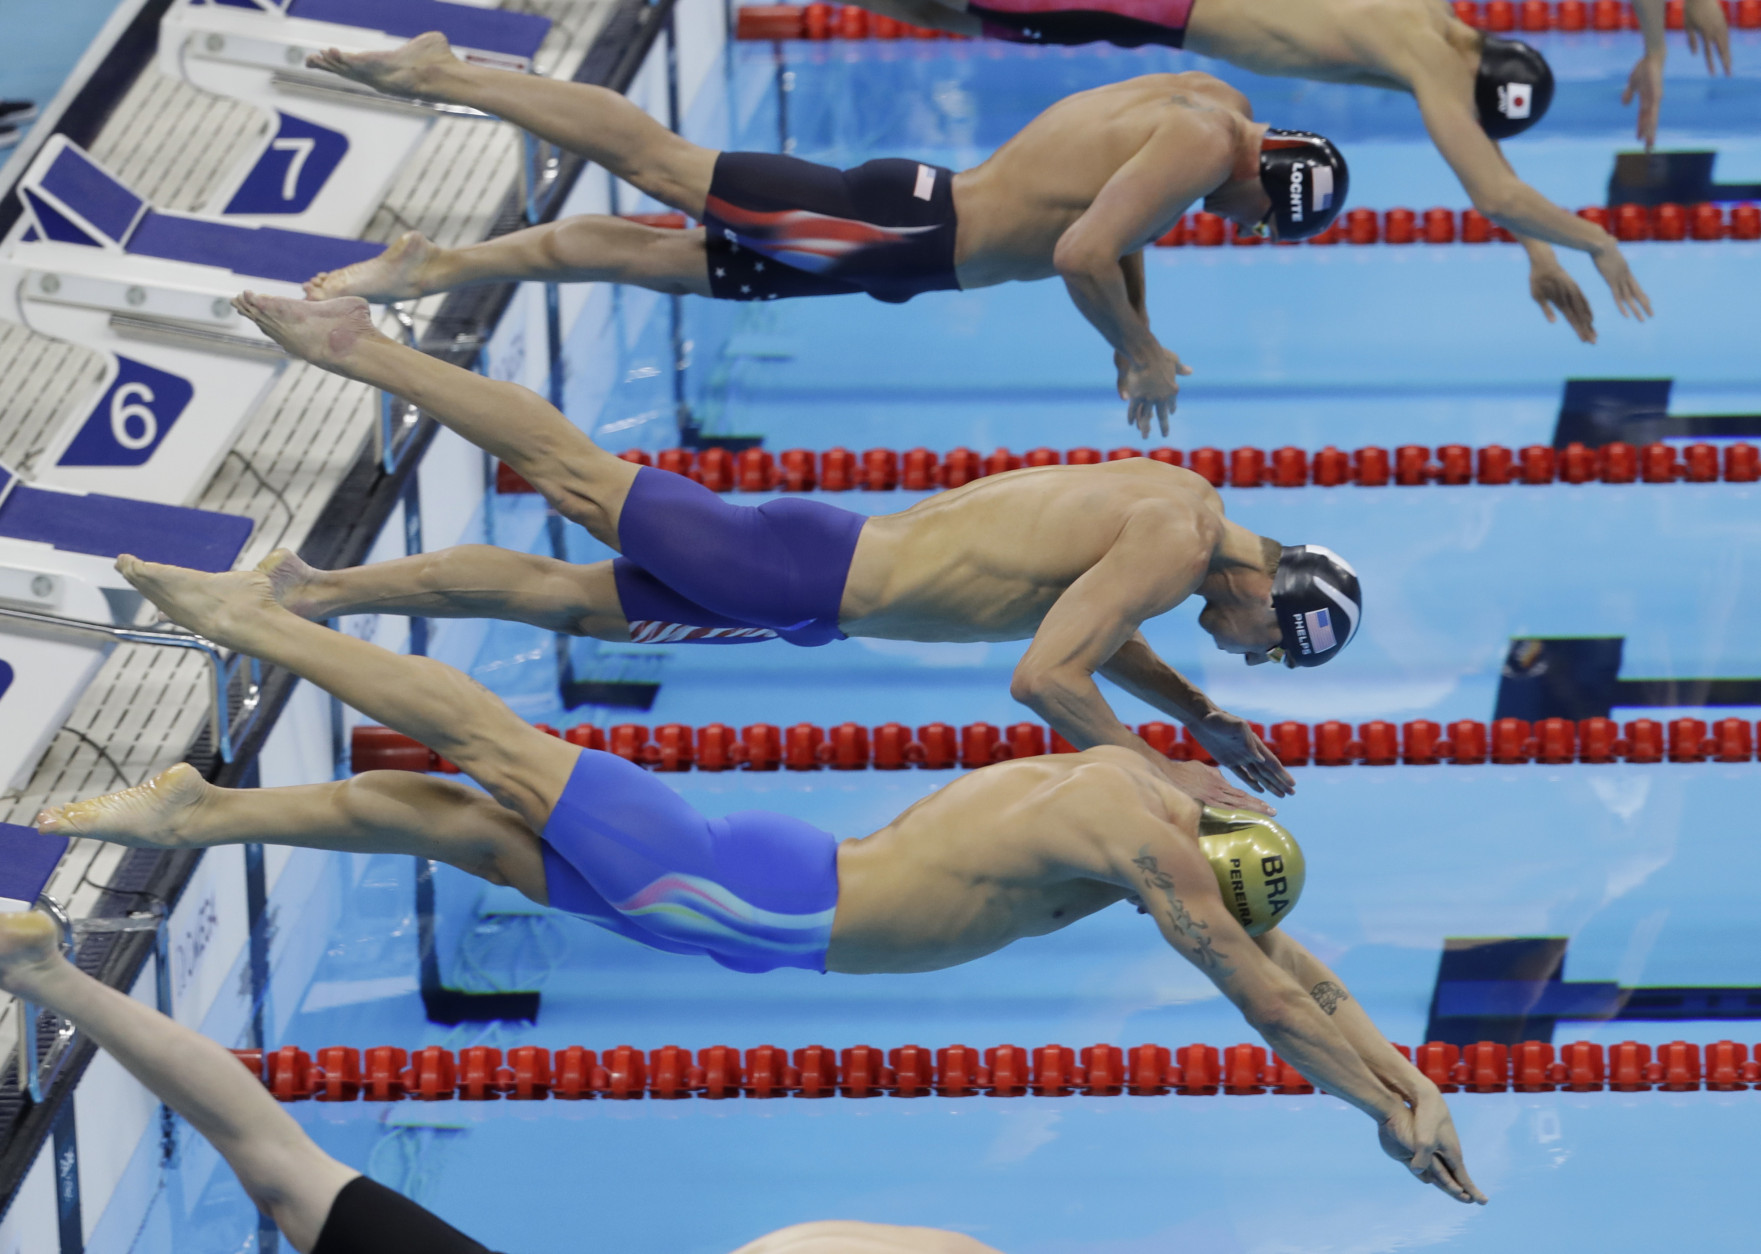 Brazil's Thiago Pereira, United States' Michael Phelps, center, and United States' Ryan Lochte, top, compete in the final of the men's 200-meter individual medley during the swimming competitions at the 2016 Summer Olympics, Thursday, Aug. 11, 2016, in Rio de Janeiro, Brazil. (AP Photo/Natacha Pisarenko)